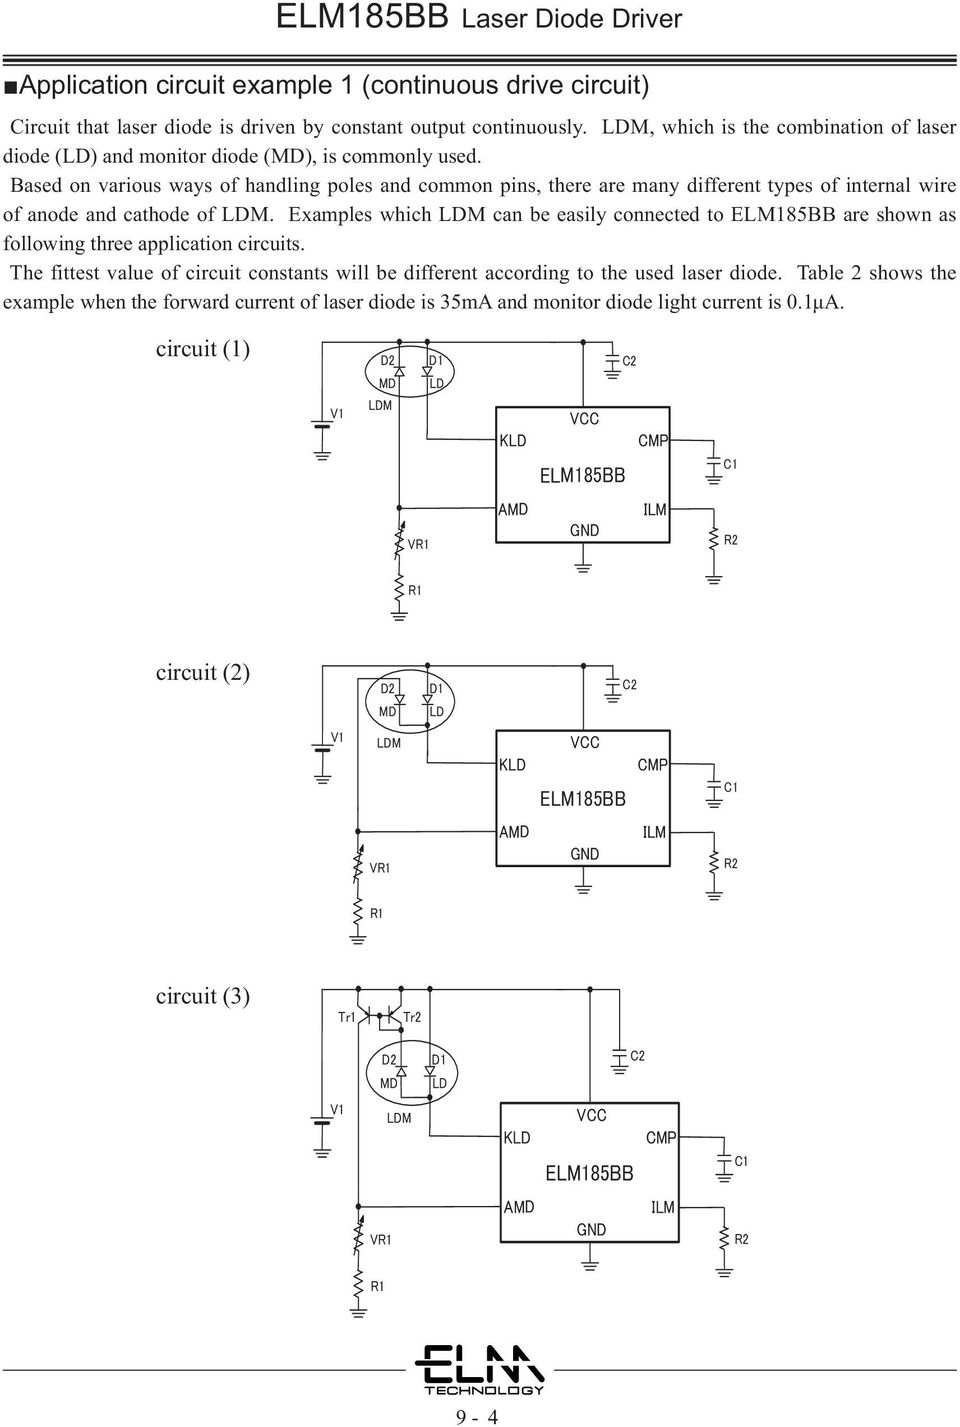 Elm185bb Laser Diode Driver Pdf 12v Switching Car Psu By Uc3843 Circuit Wiring Diagrams Based On Various Ways Of Handling Poles And Common Pins There Are Many Different Types